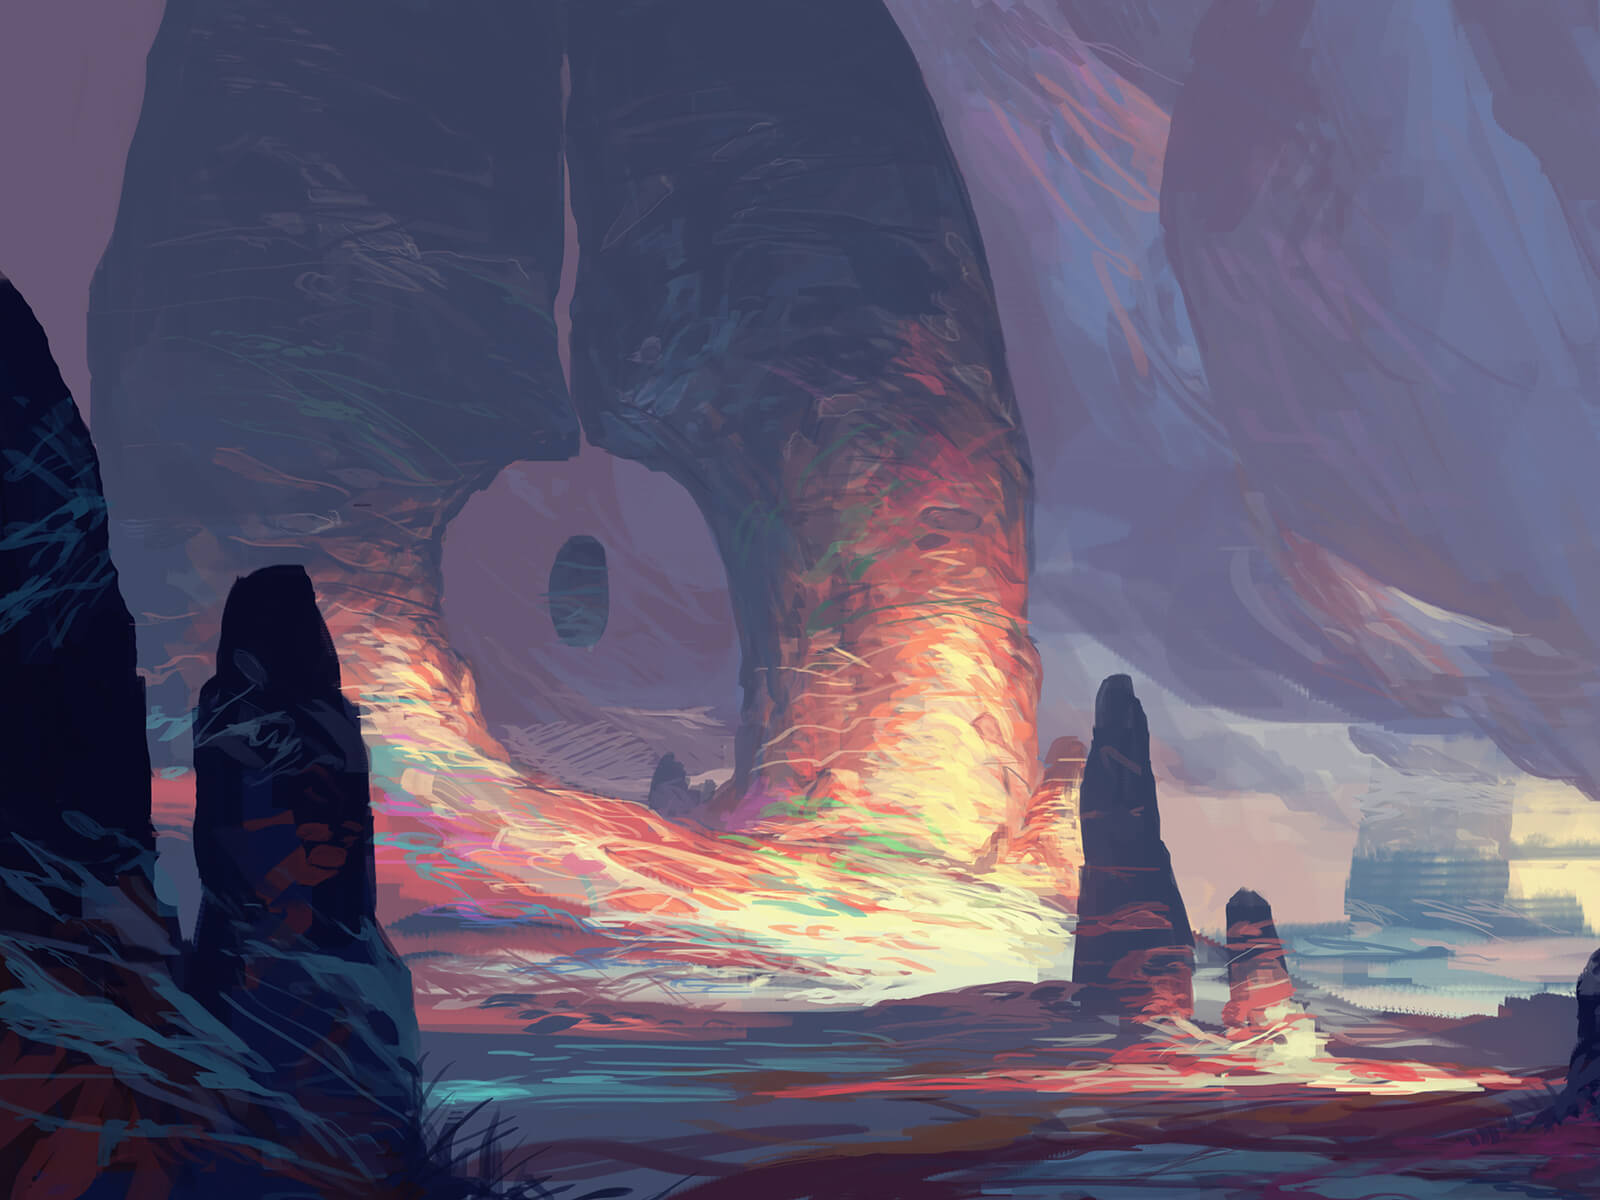 A rocky, alien environment with colorful outcroppings. An ovoid boulder floats inexplicably in between two stone spires.